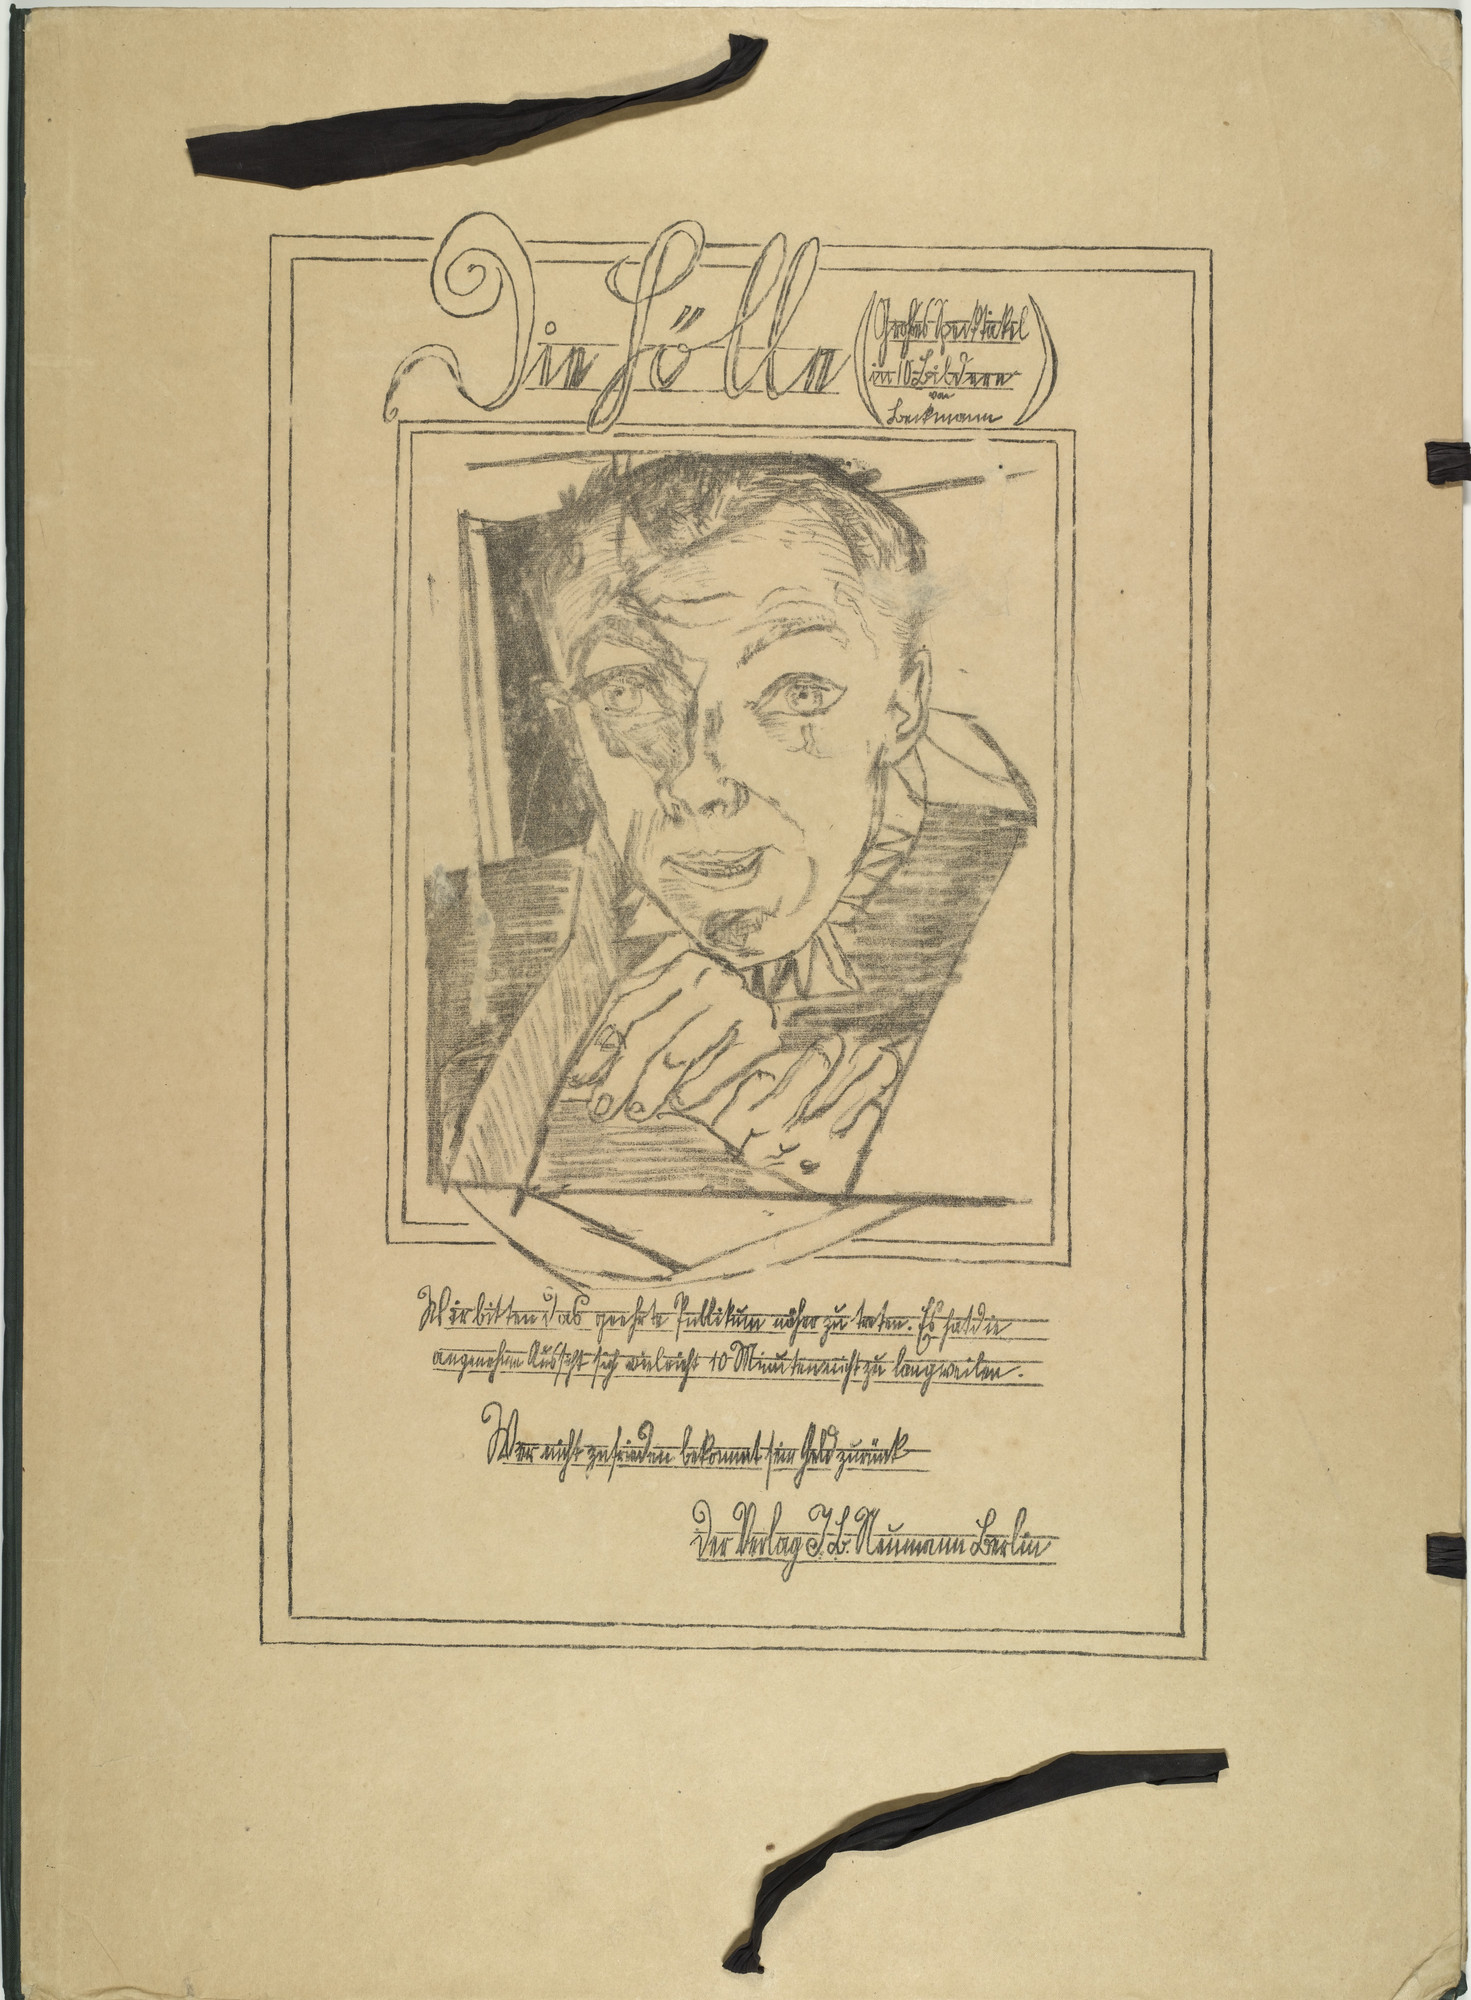 Max Beckmann. Self-Portrait (front cover) (Selbstbildnis [Umschlag]) from Hell (Die Hölle). (1918/1919, published 1919)